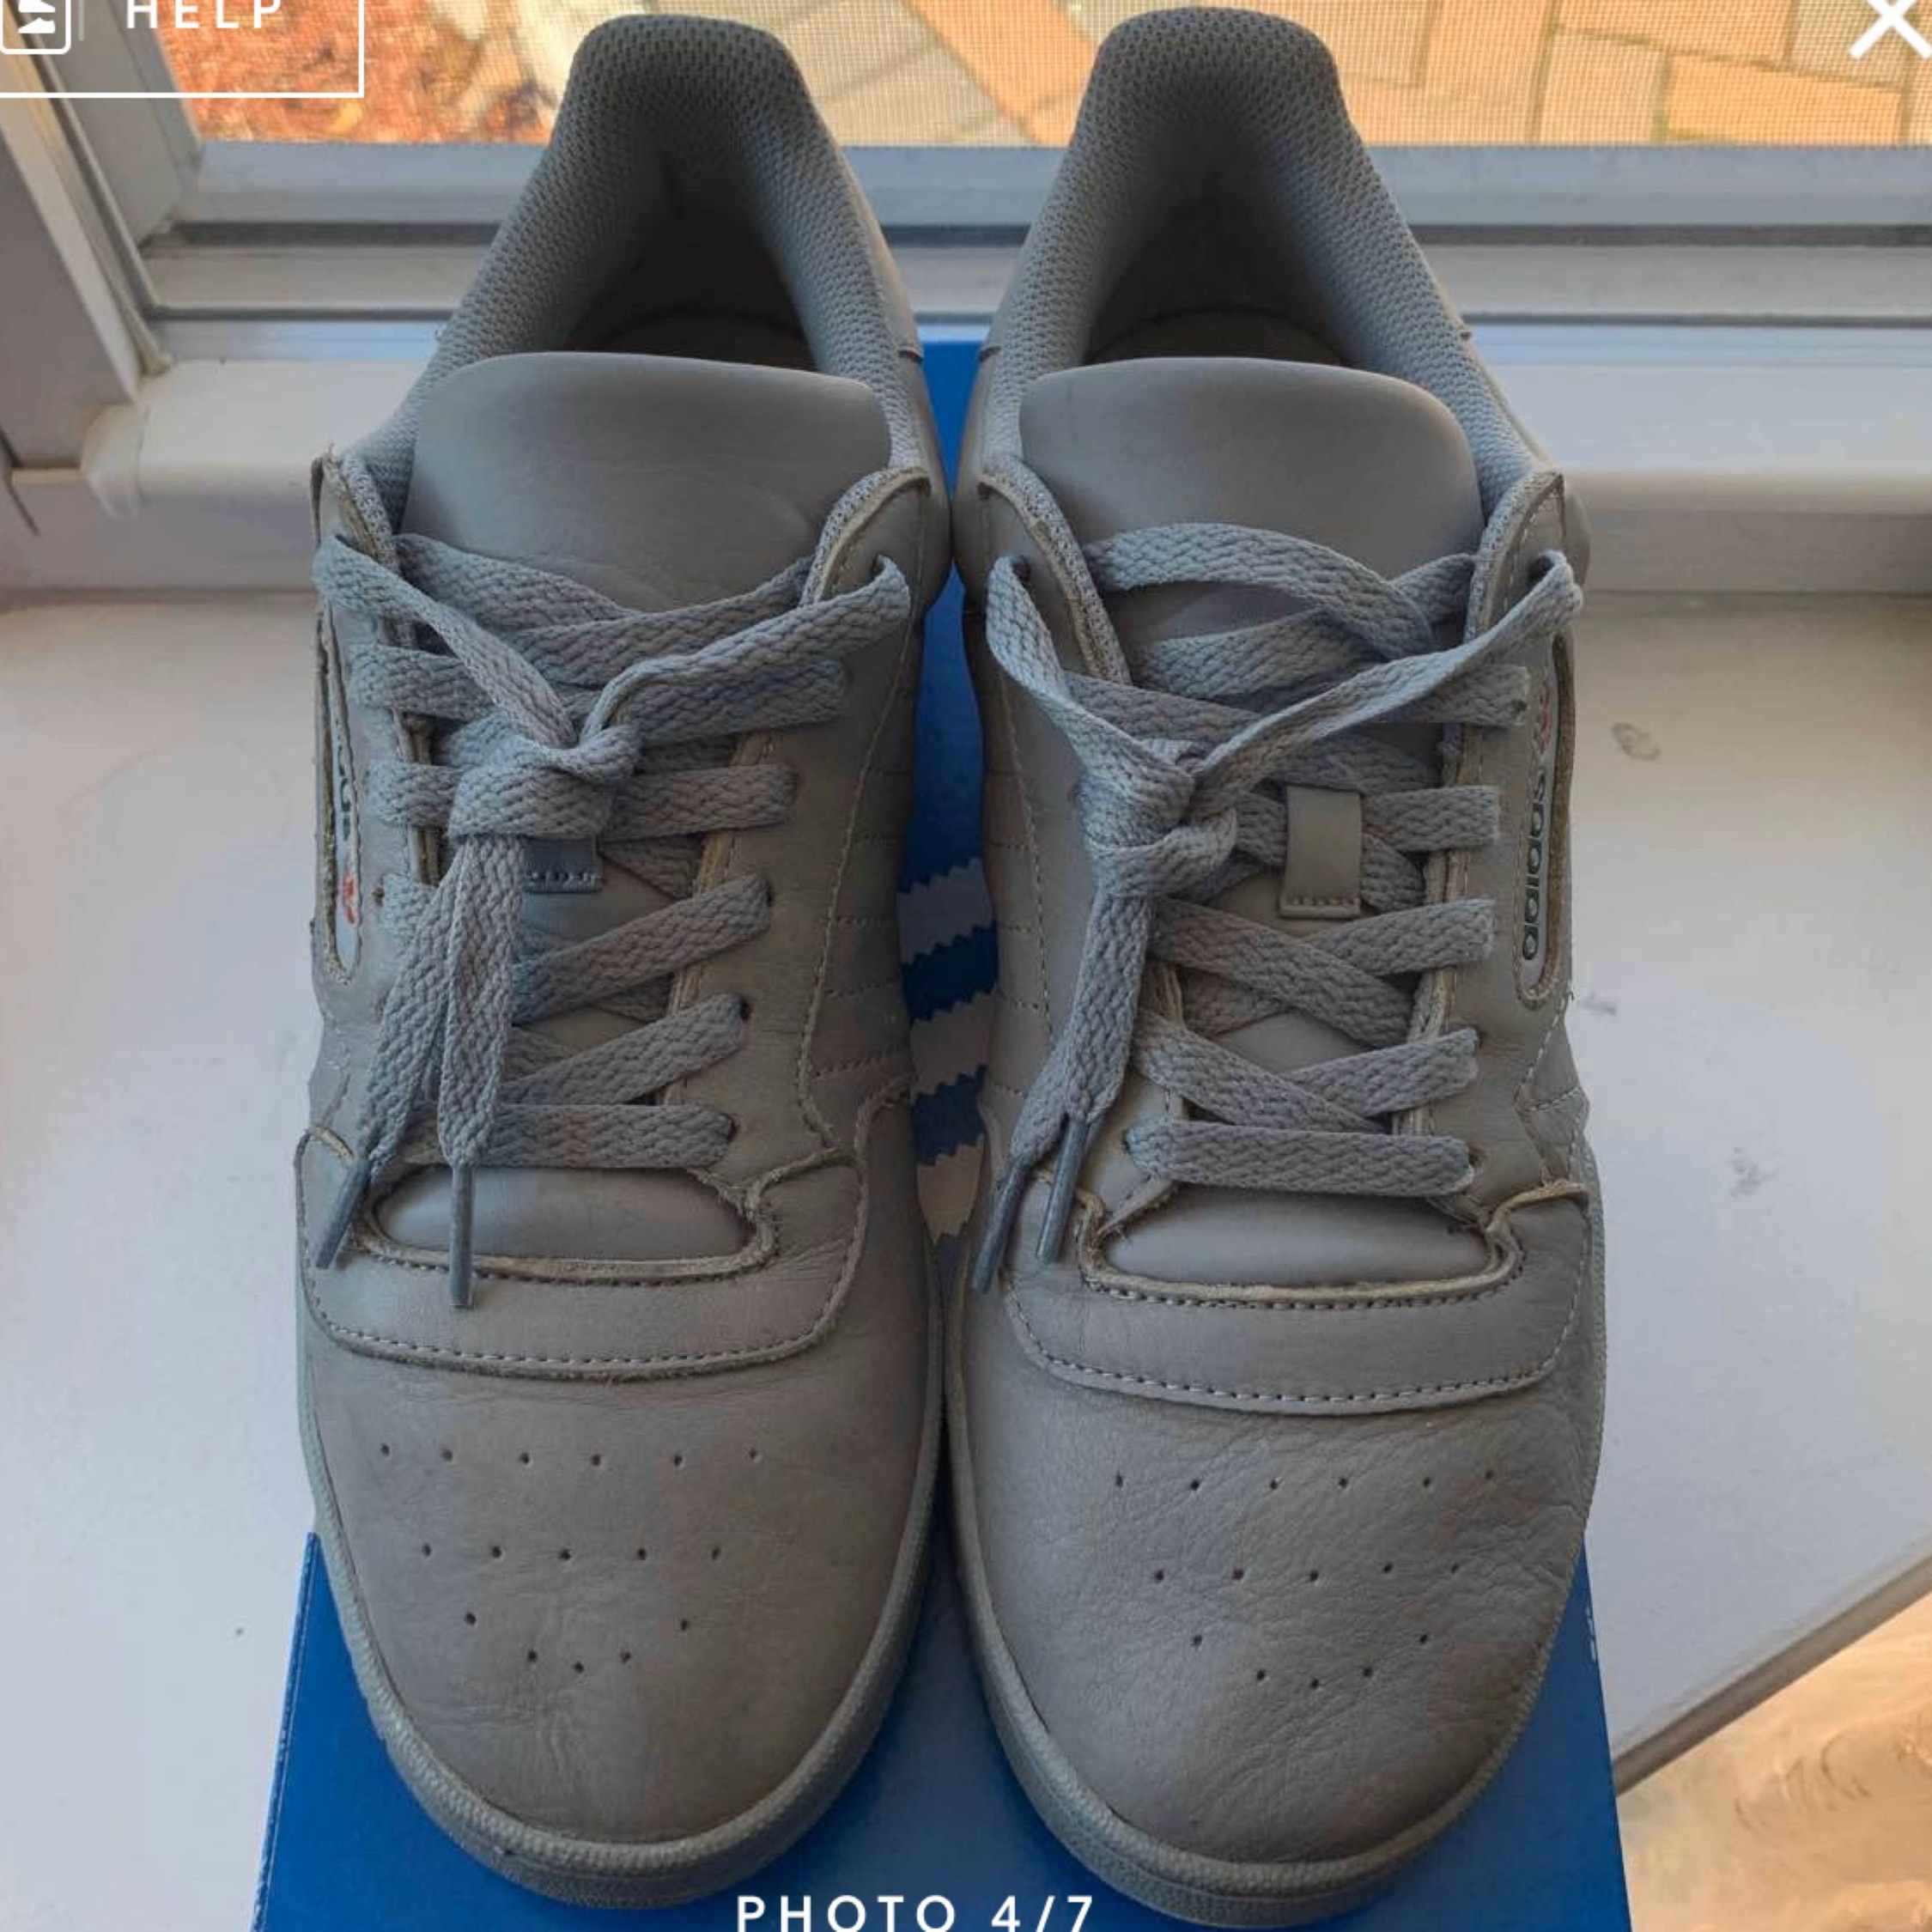 Yeezy Powerphase Calabasas 'Grey' Sz 9 Used